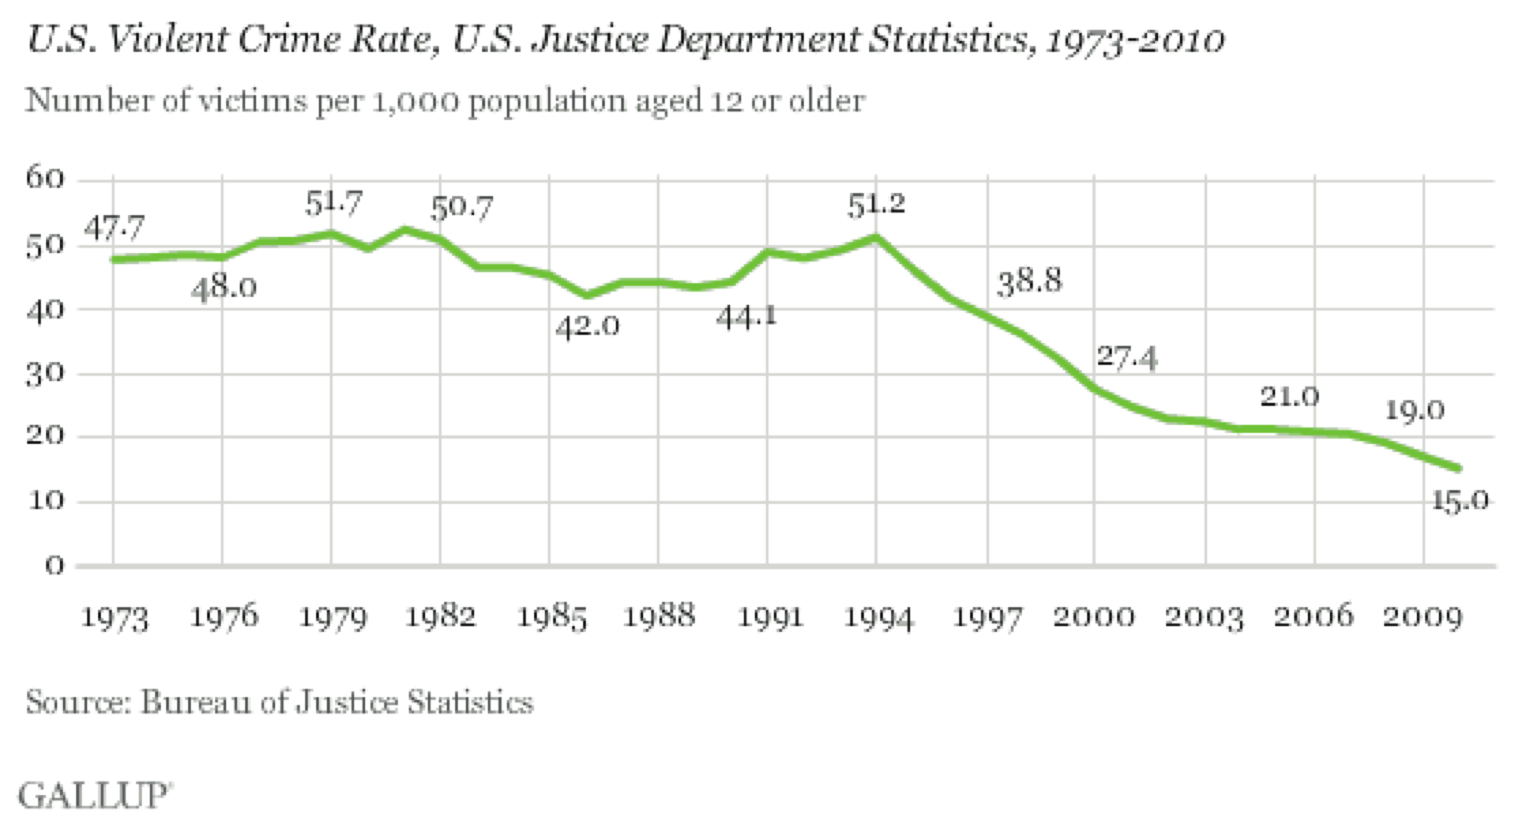 Line chart of declining violent crime in the U.S.